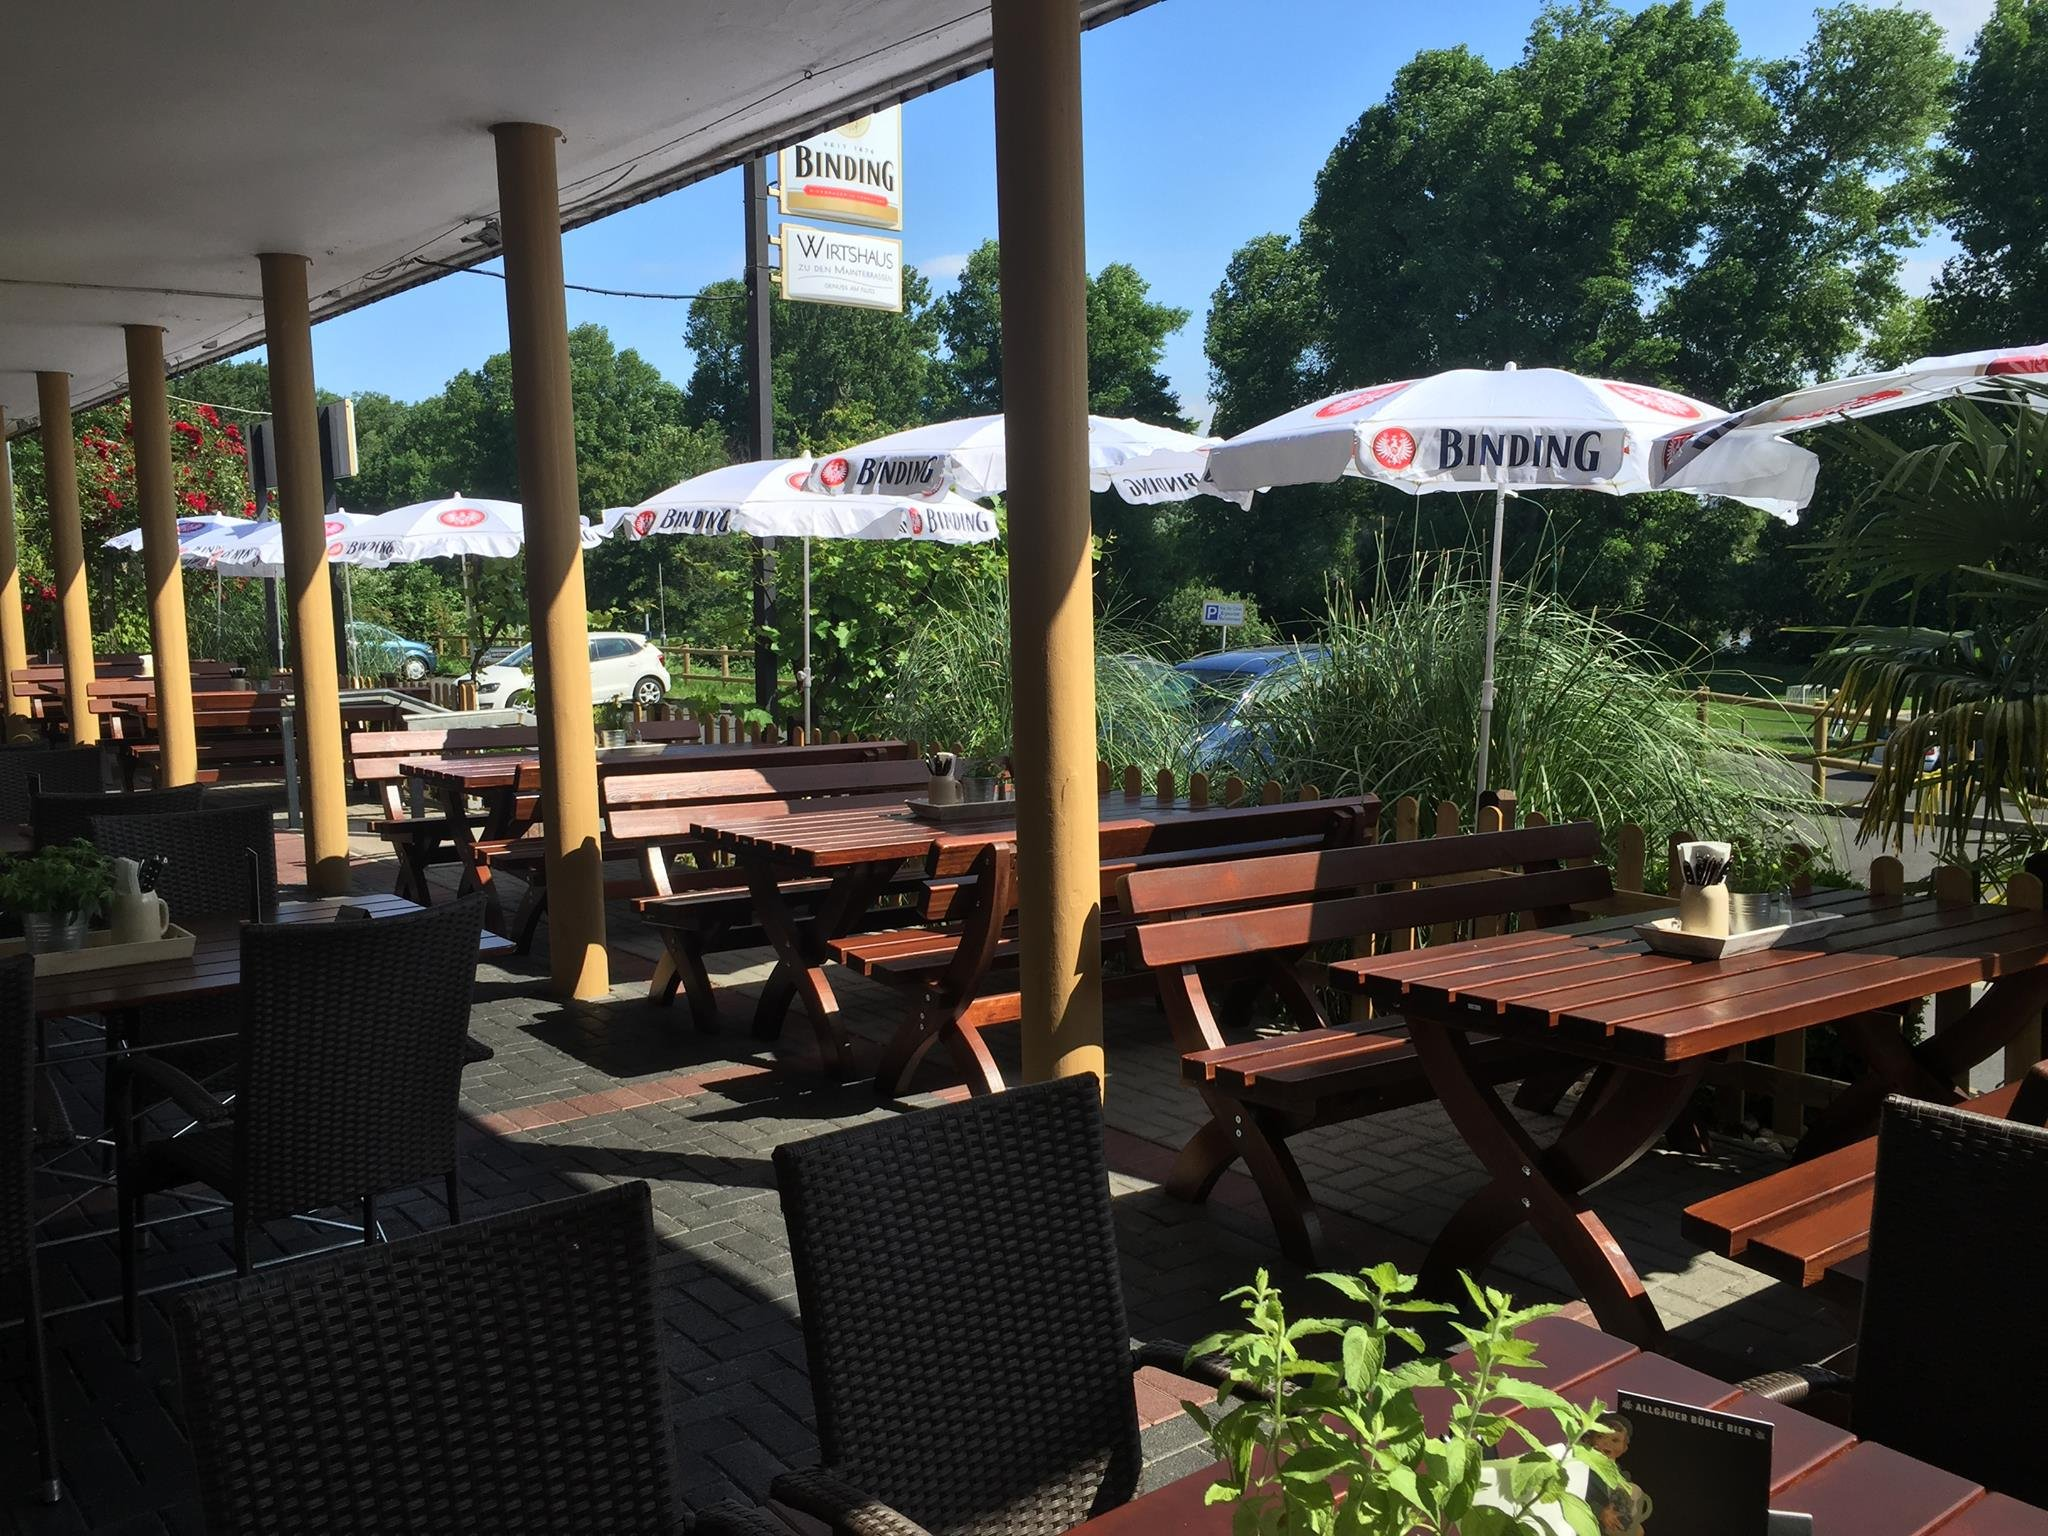 Where to eat Diner food in Muhlheim am Main: The Best Restaurants and Bars